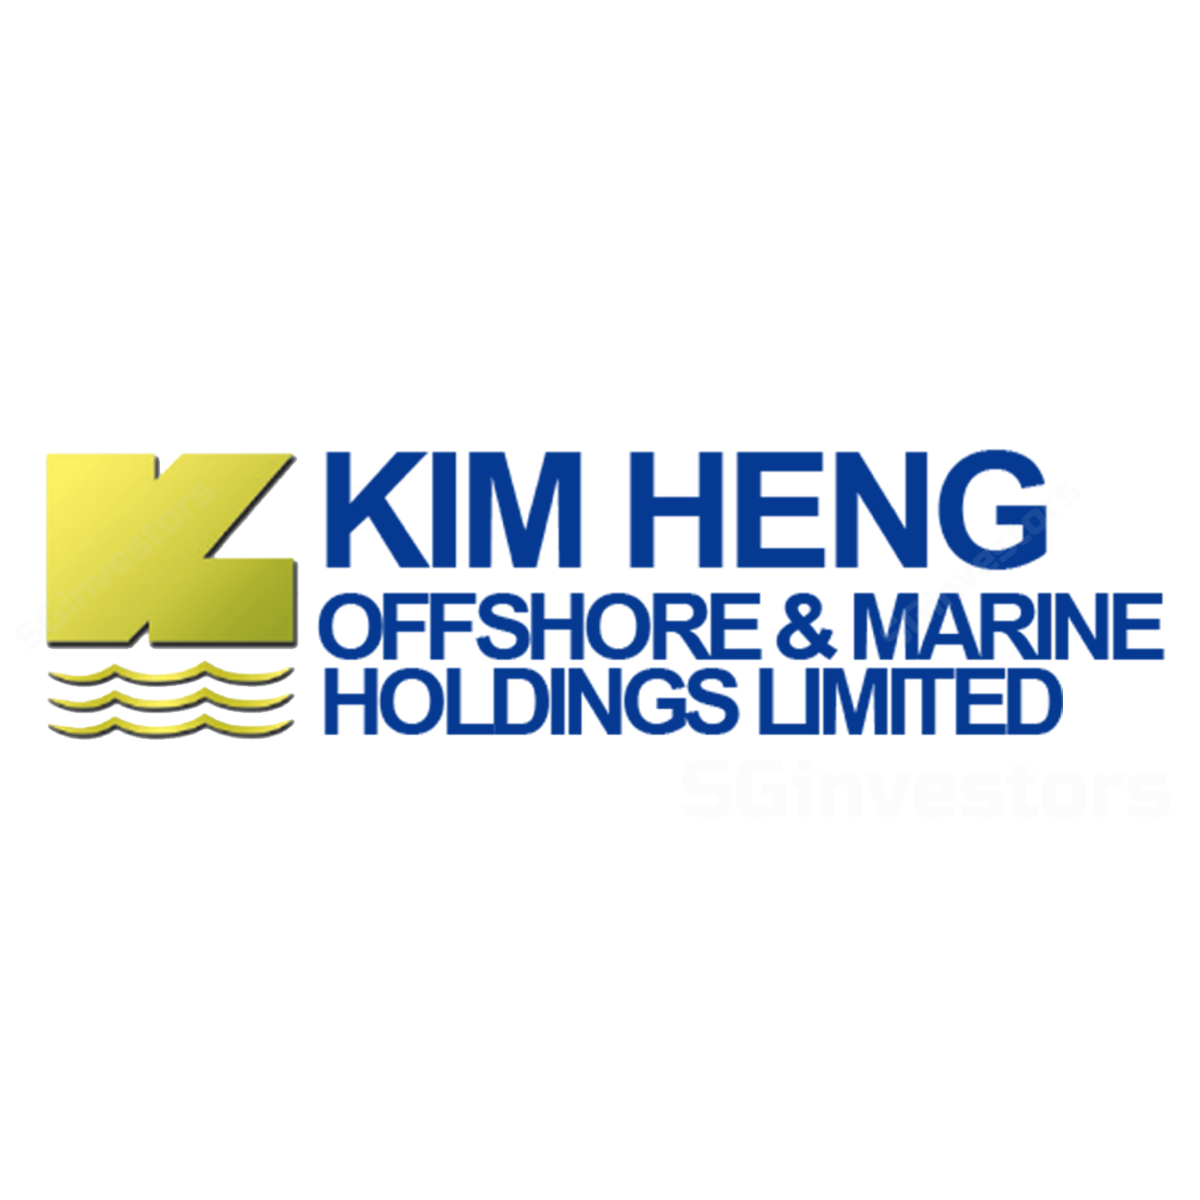 Kim Heng Offshore & Marine - OCBC Investment 2017-03-03: Conserving cash